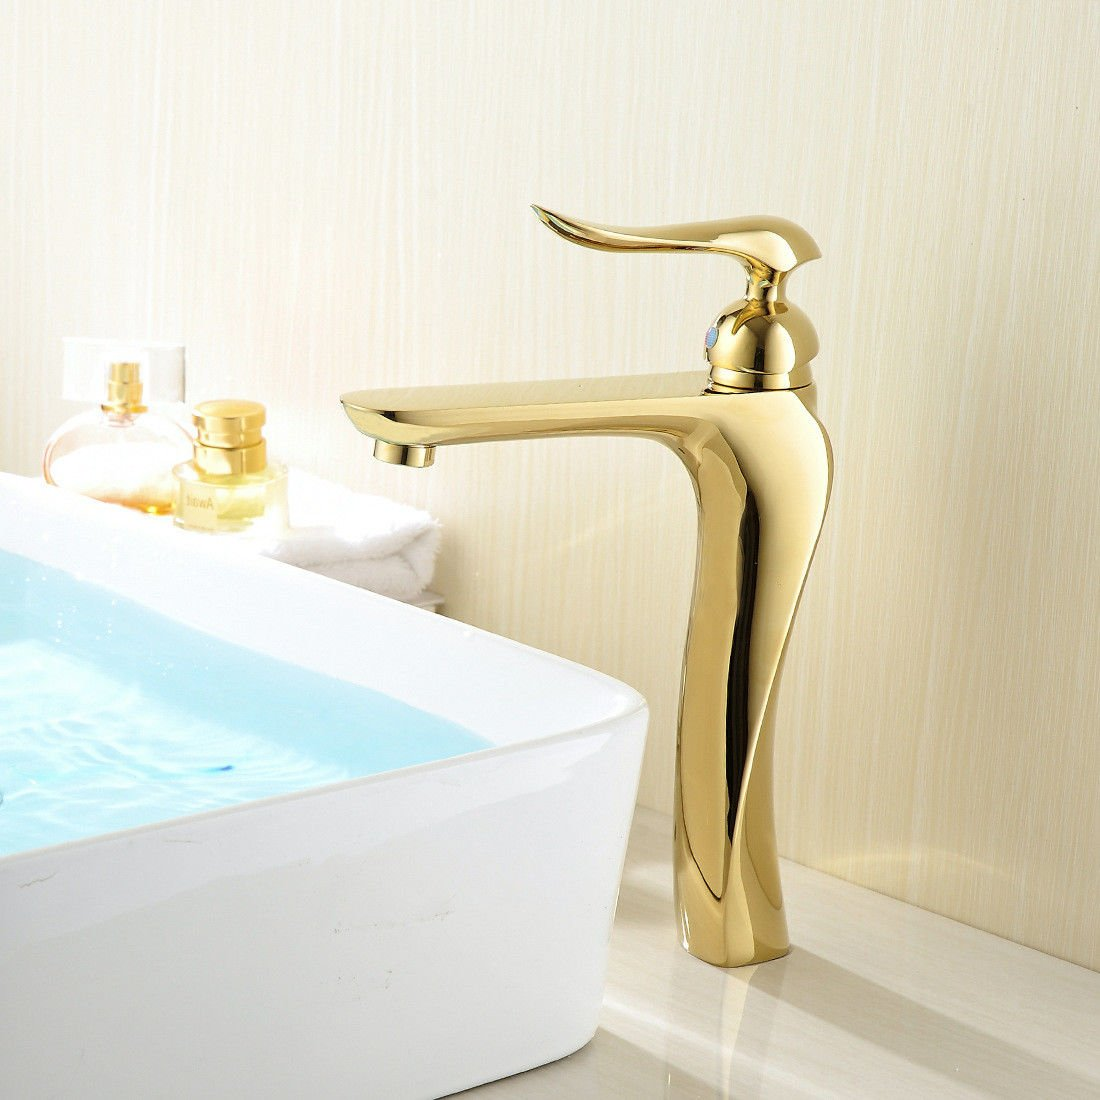 Lpophy Bathroom Sink Mixer Taps Faucet Bath Waterfall Cold and Hot Water Tap for Washroom Bathroom and Kitchen Copper Chrome-Plated gold Long Single Handle Single Hole Water Mixing Single